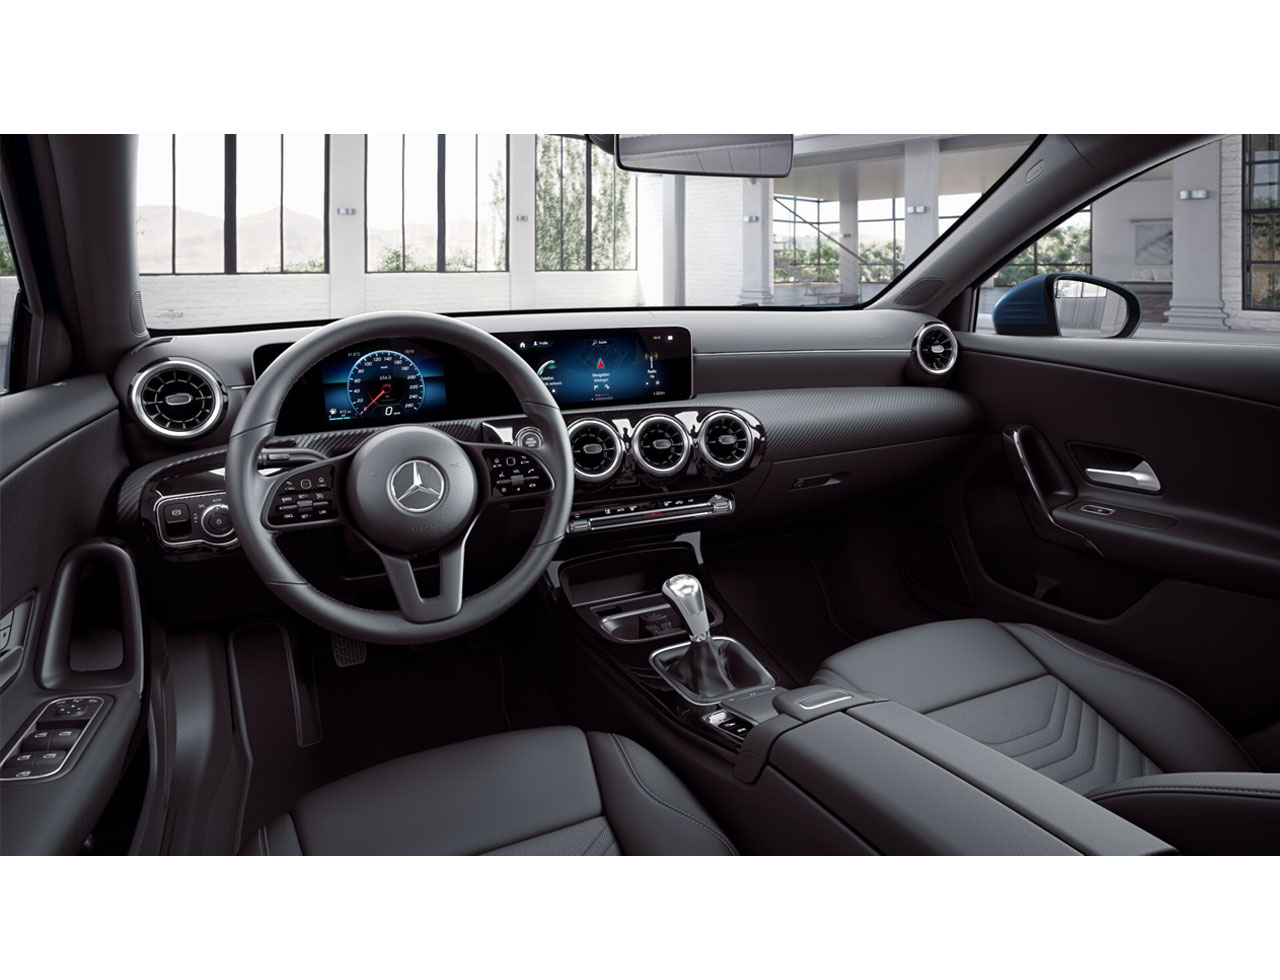 Mercedes A Klasse private lease